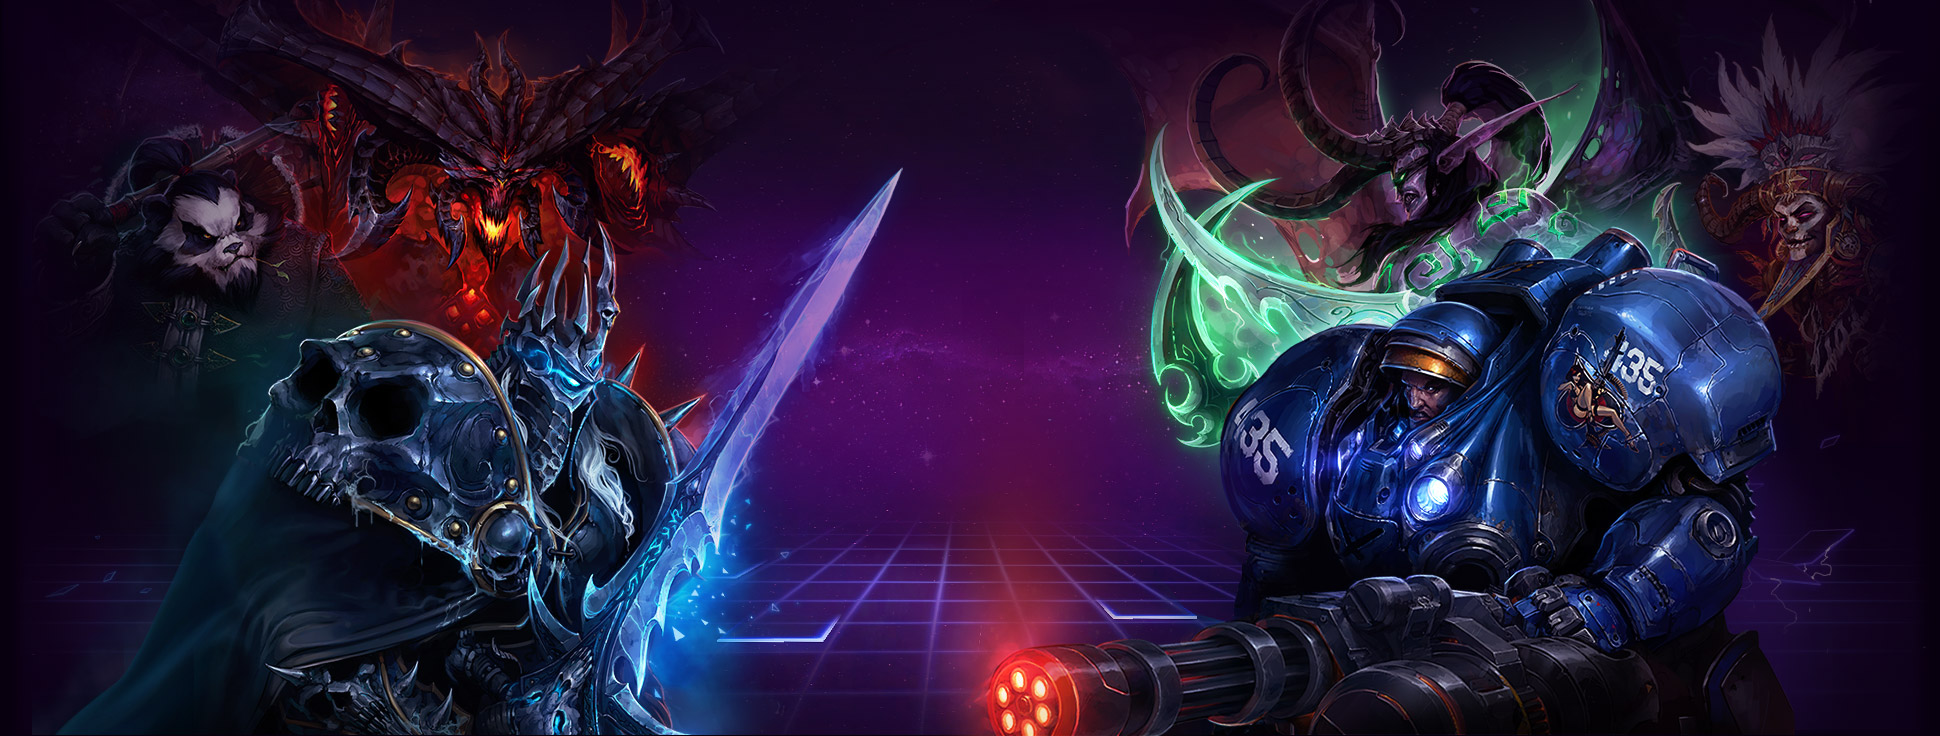 Análise Heroes of the Storm